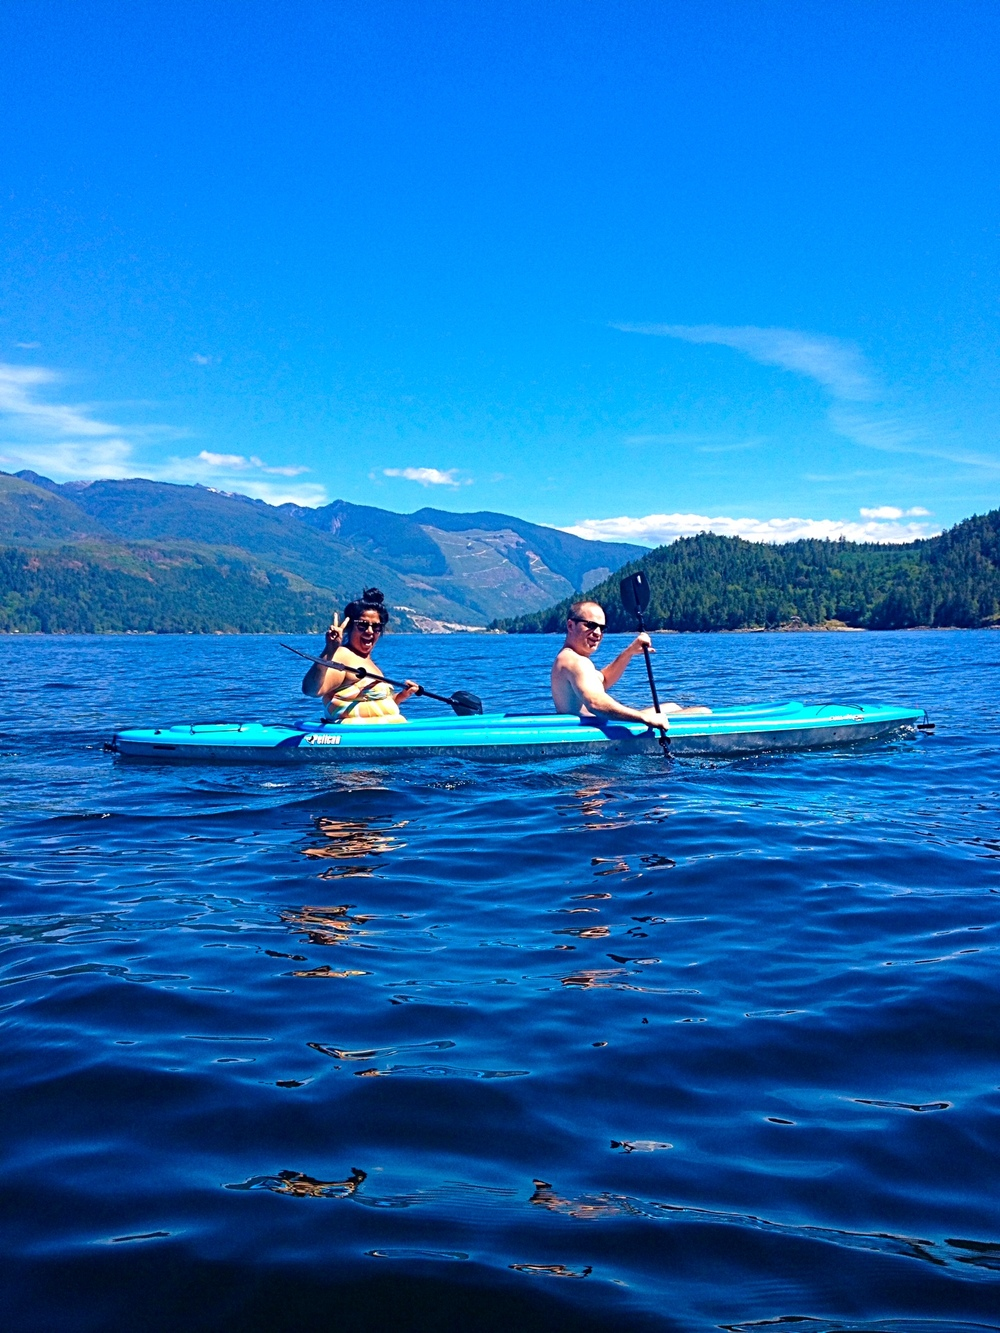 rent a double kayak, explore hidden coves and beaches